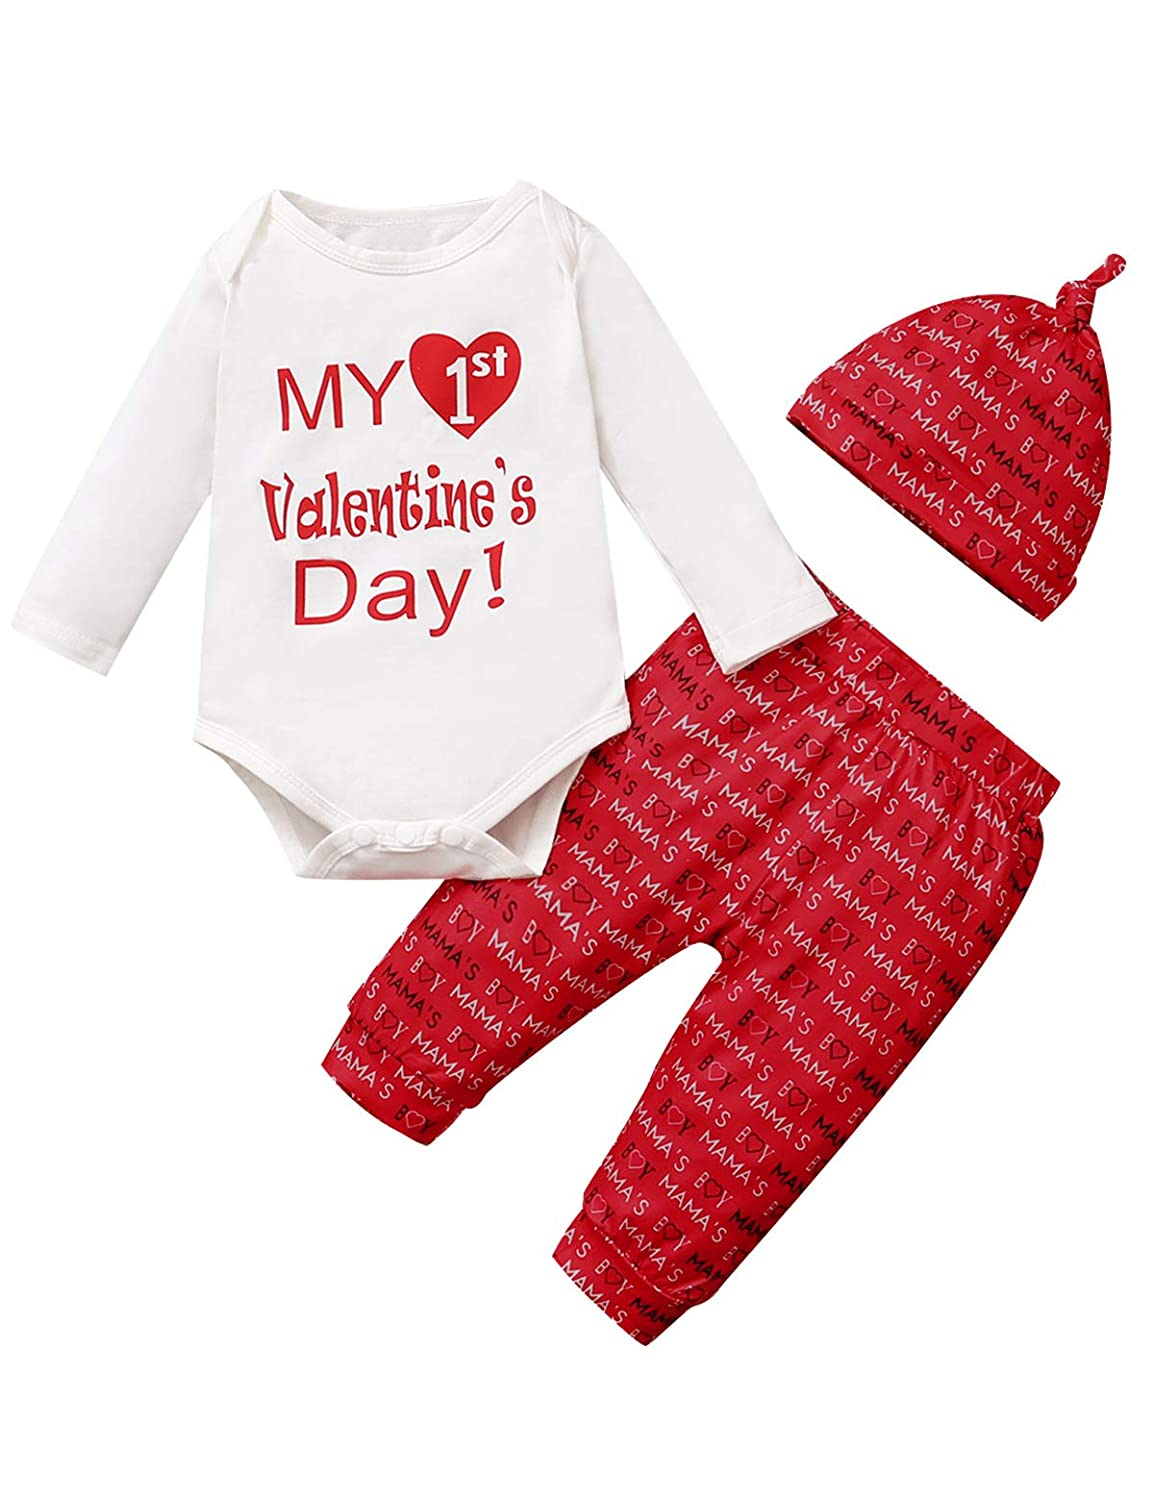 Baby Boys Girls Outfit Set My First Valentines Day Bodysuit